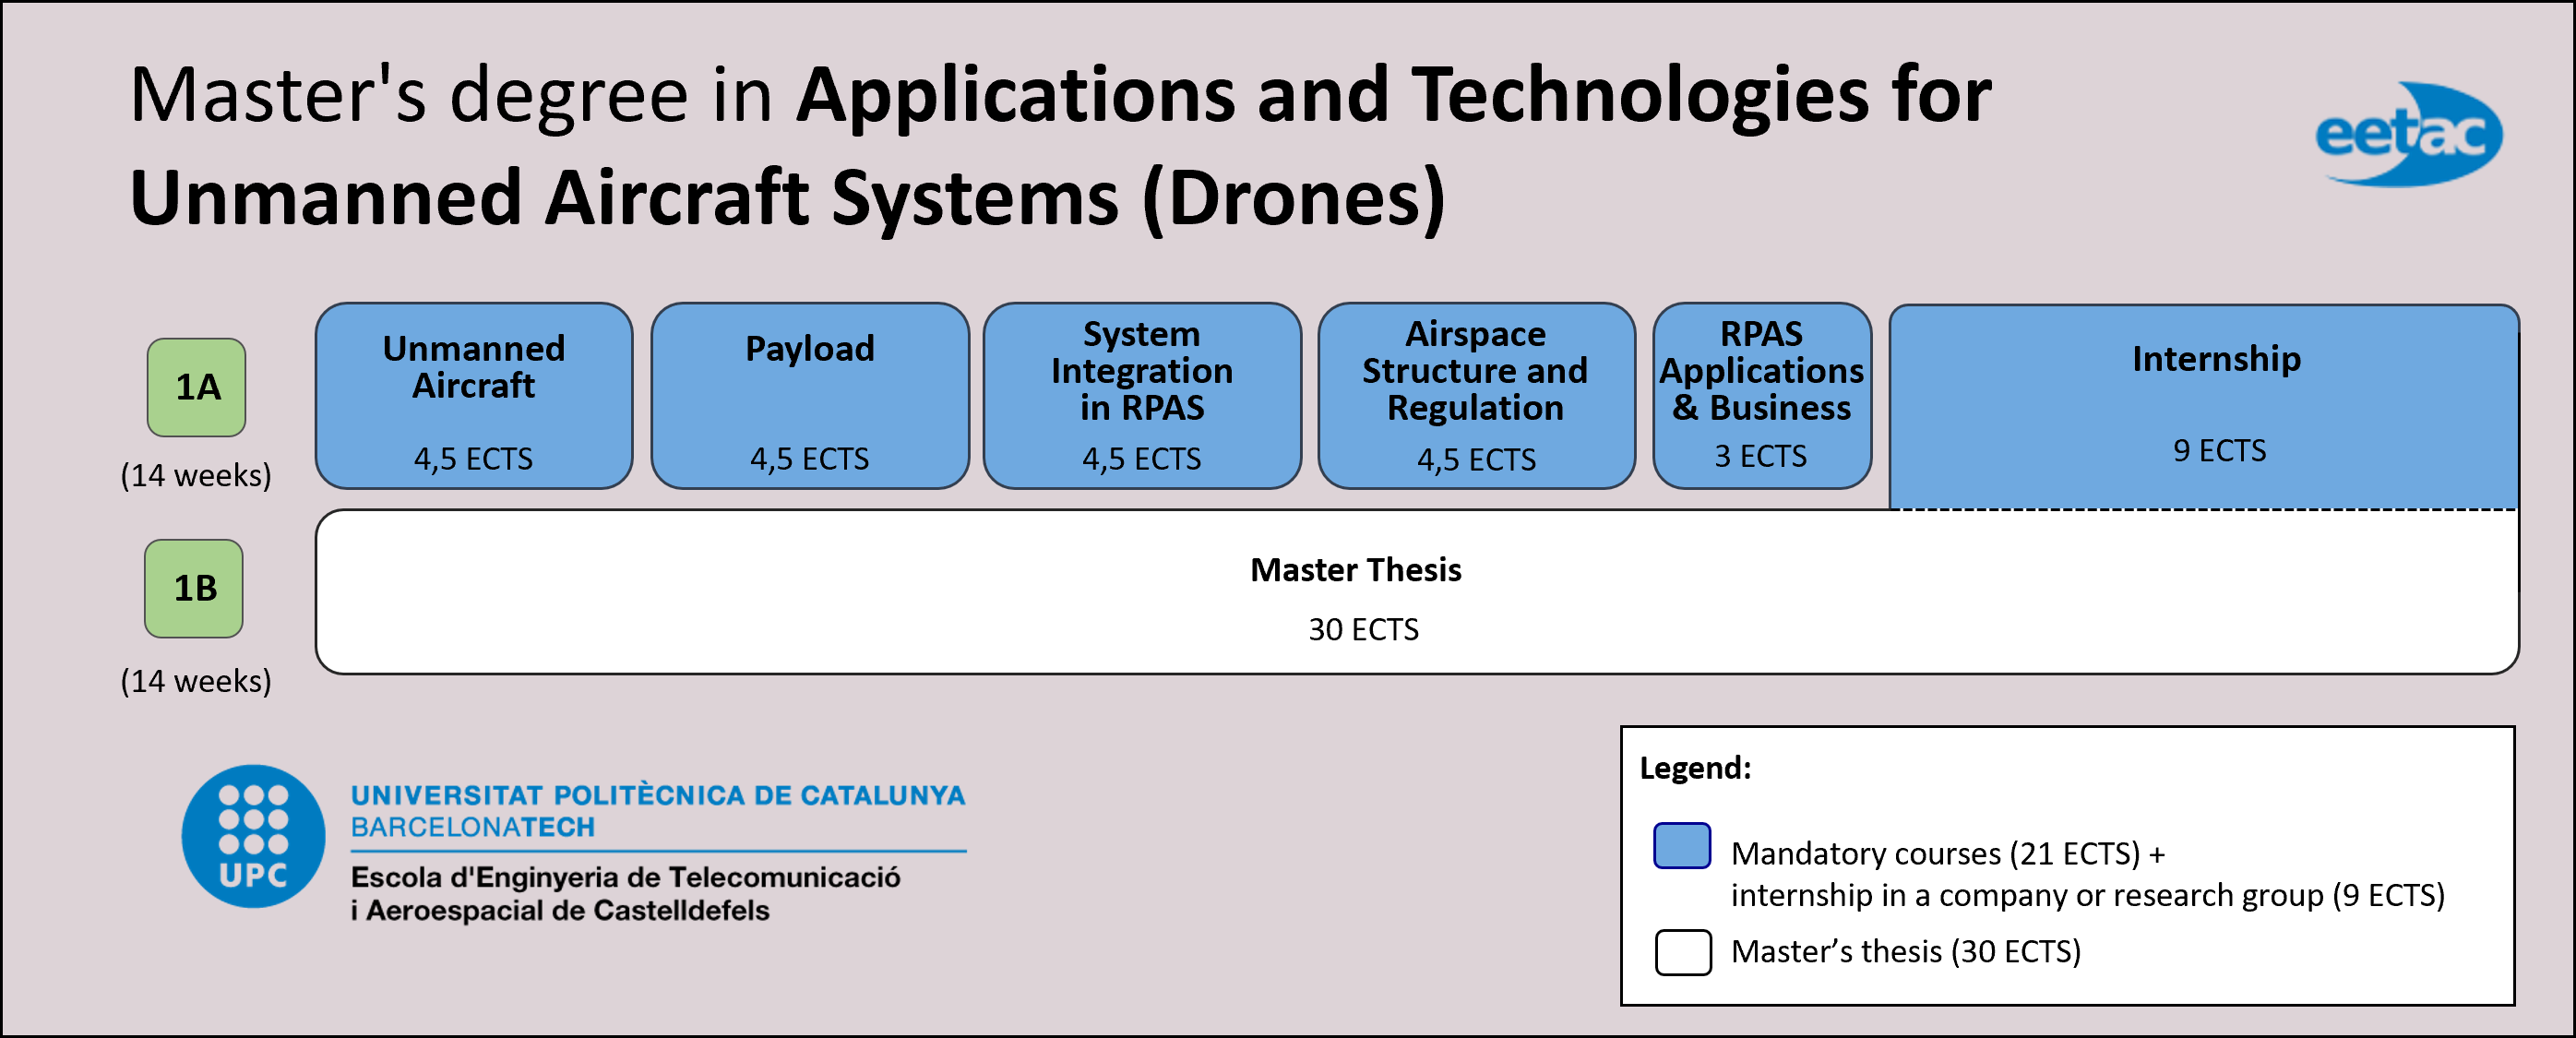 Master's degree in Applications and Technologies for Unmanned Aircraft Systems